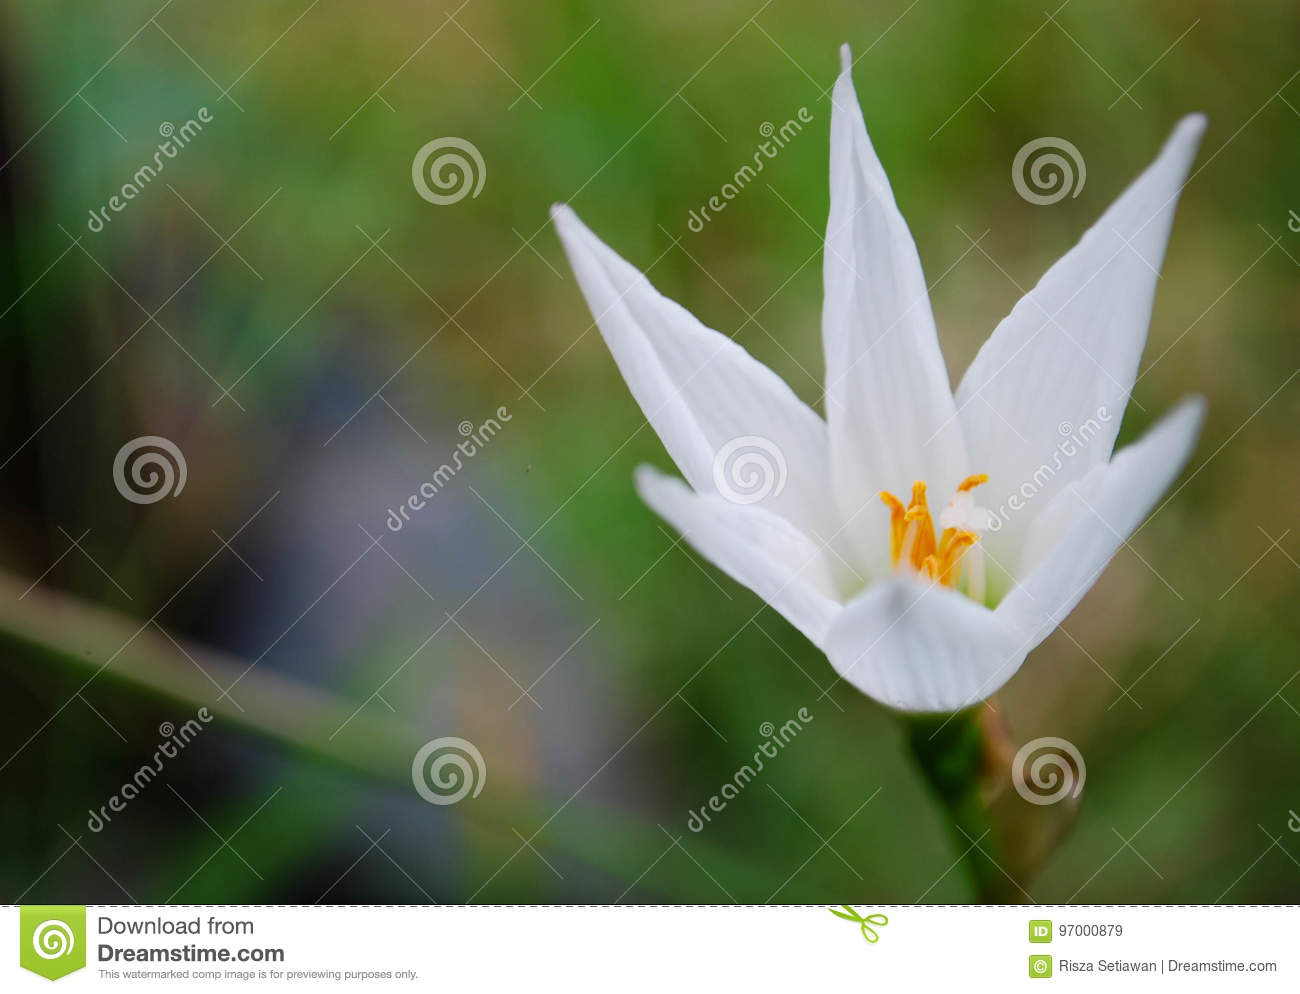 Small white lily stock image image of flower asia small 97000879 download small white lily stock image image of flower asia small 97000879 izmirmasajfo